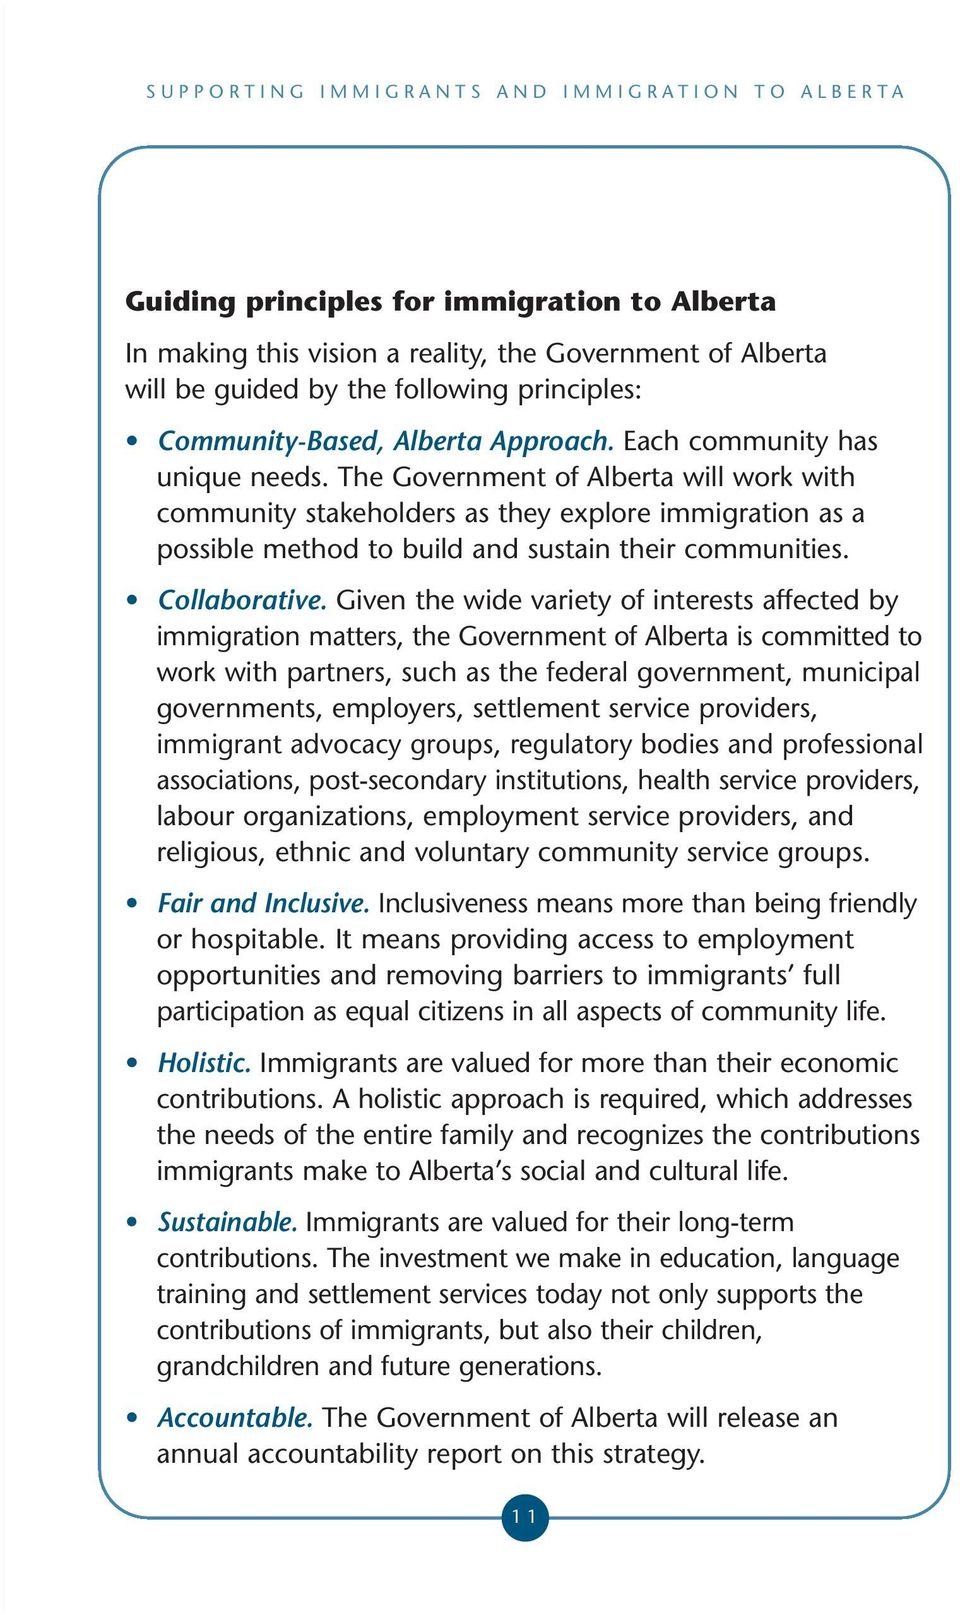 Given the wide variety of interests affected by immigration matters, the Government of Alberta is committed to work with partners, such as the federal government, municipal governments, employers,